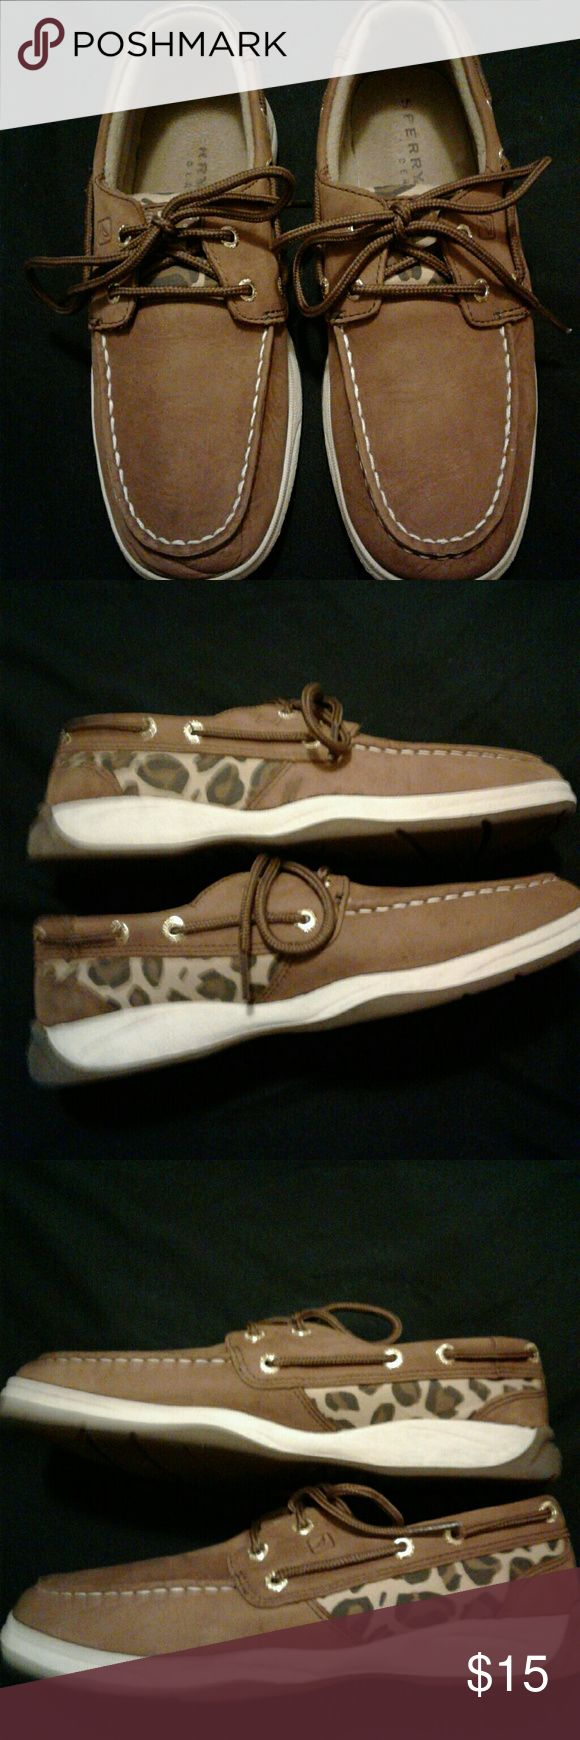 Sperry Loafers Girls Nice shoes, good condition.  Size 3.5 girls Sperry Shoes